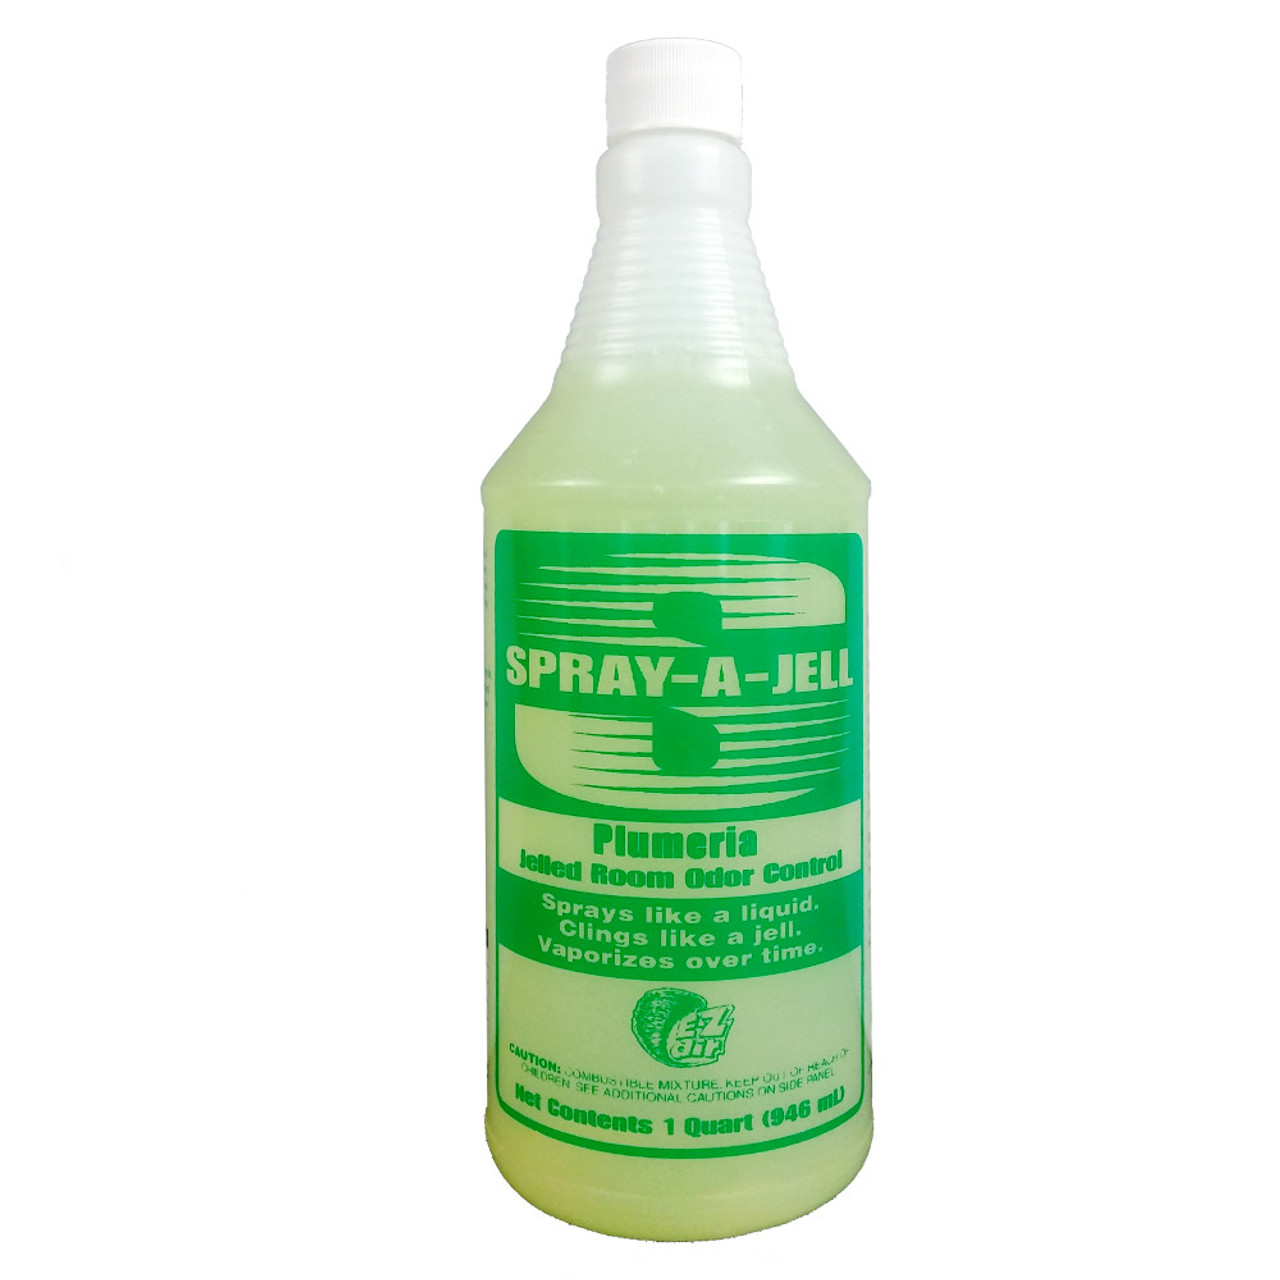 Unlike other deordorizers, Spray-A-Jell stays where you spray it.